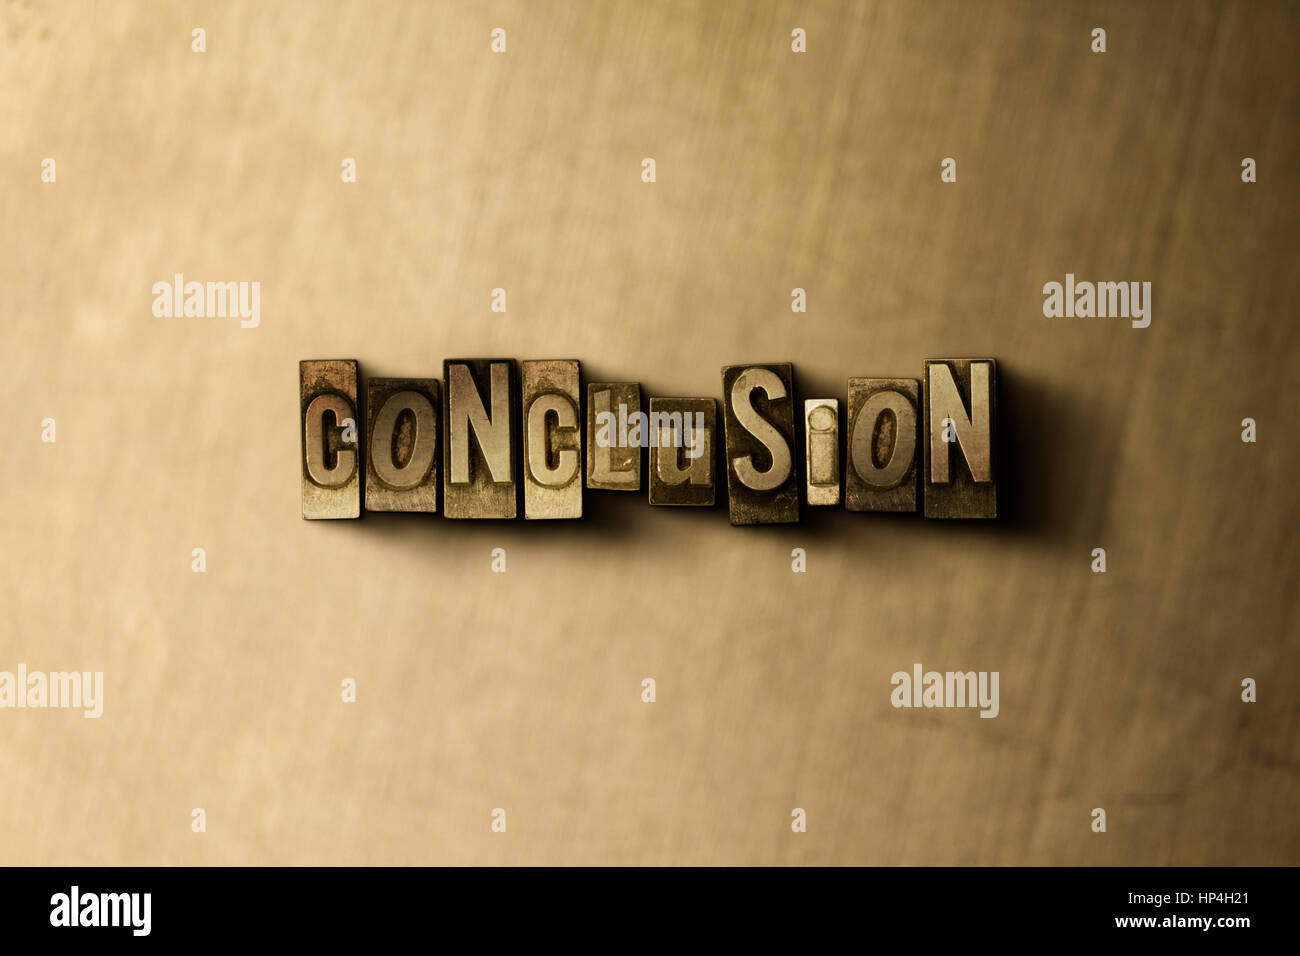 CONCLUSION - close-up of grungy vintage typeset word on metal backdrop. Royalty free stock illustration.  Can be - Stock Image